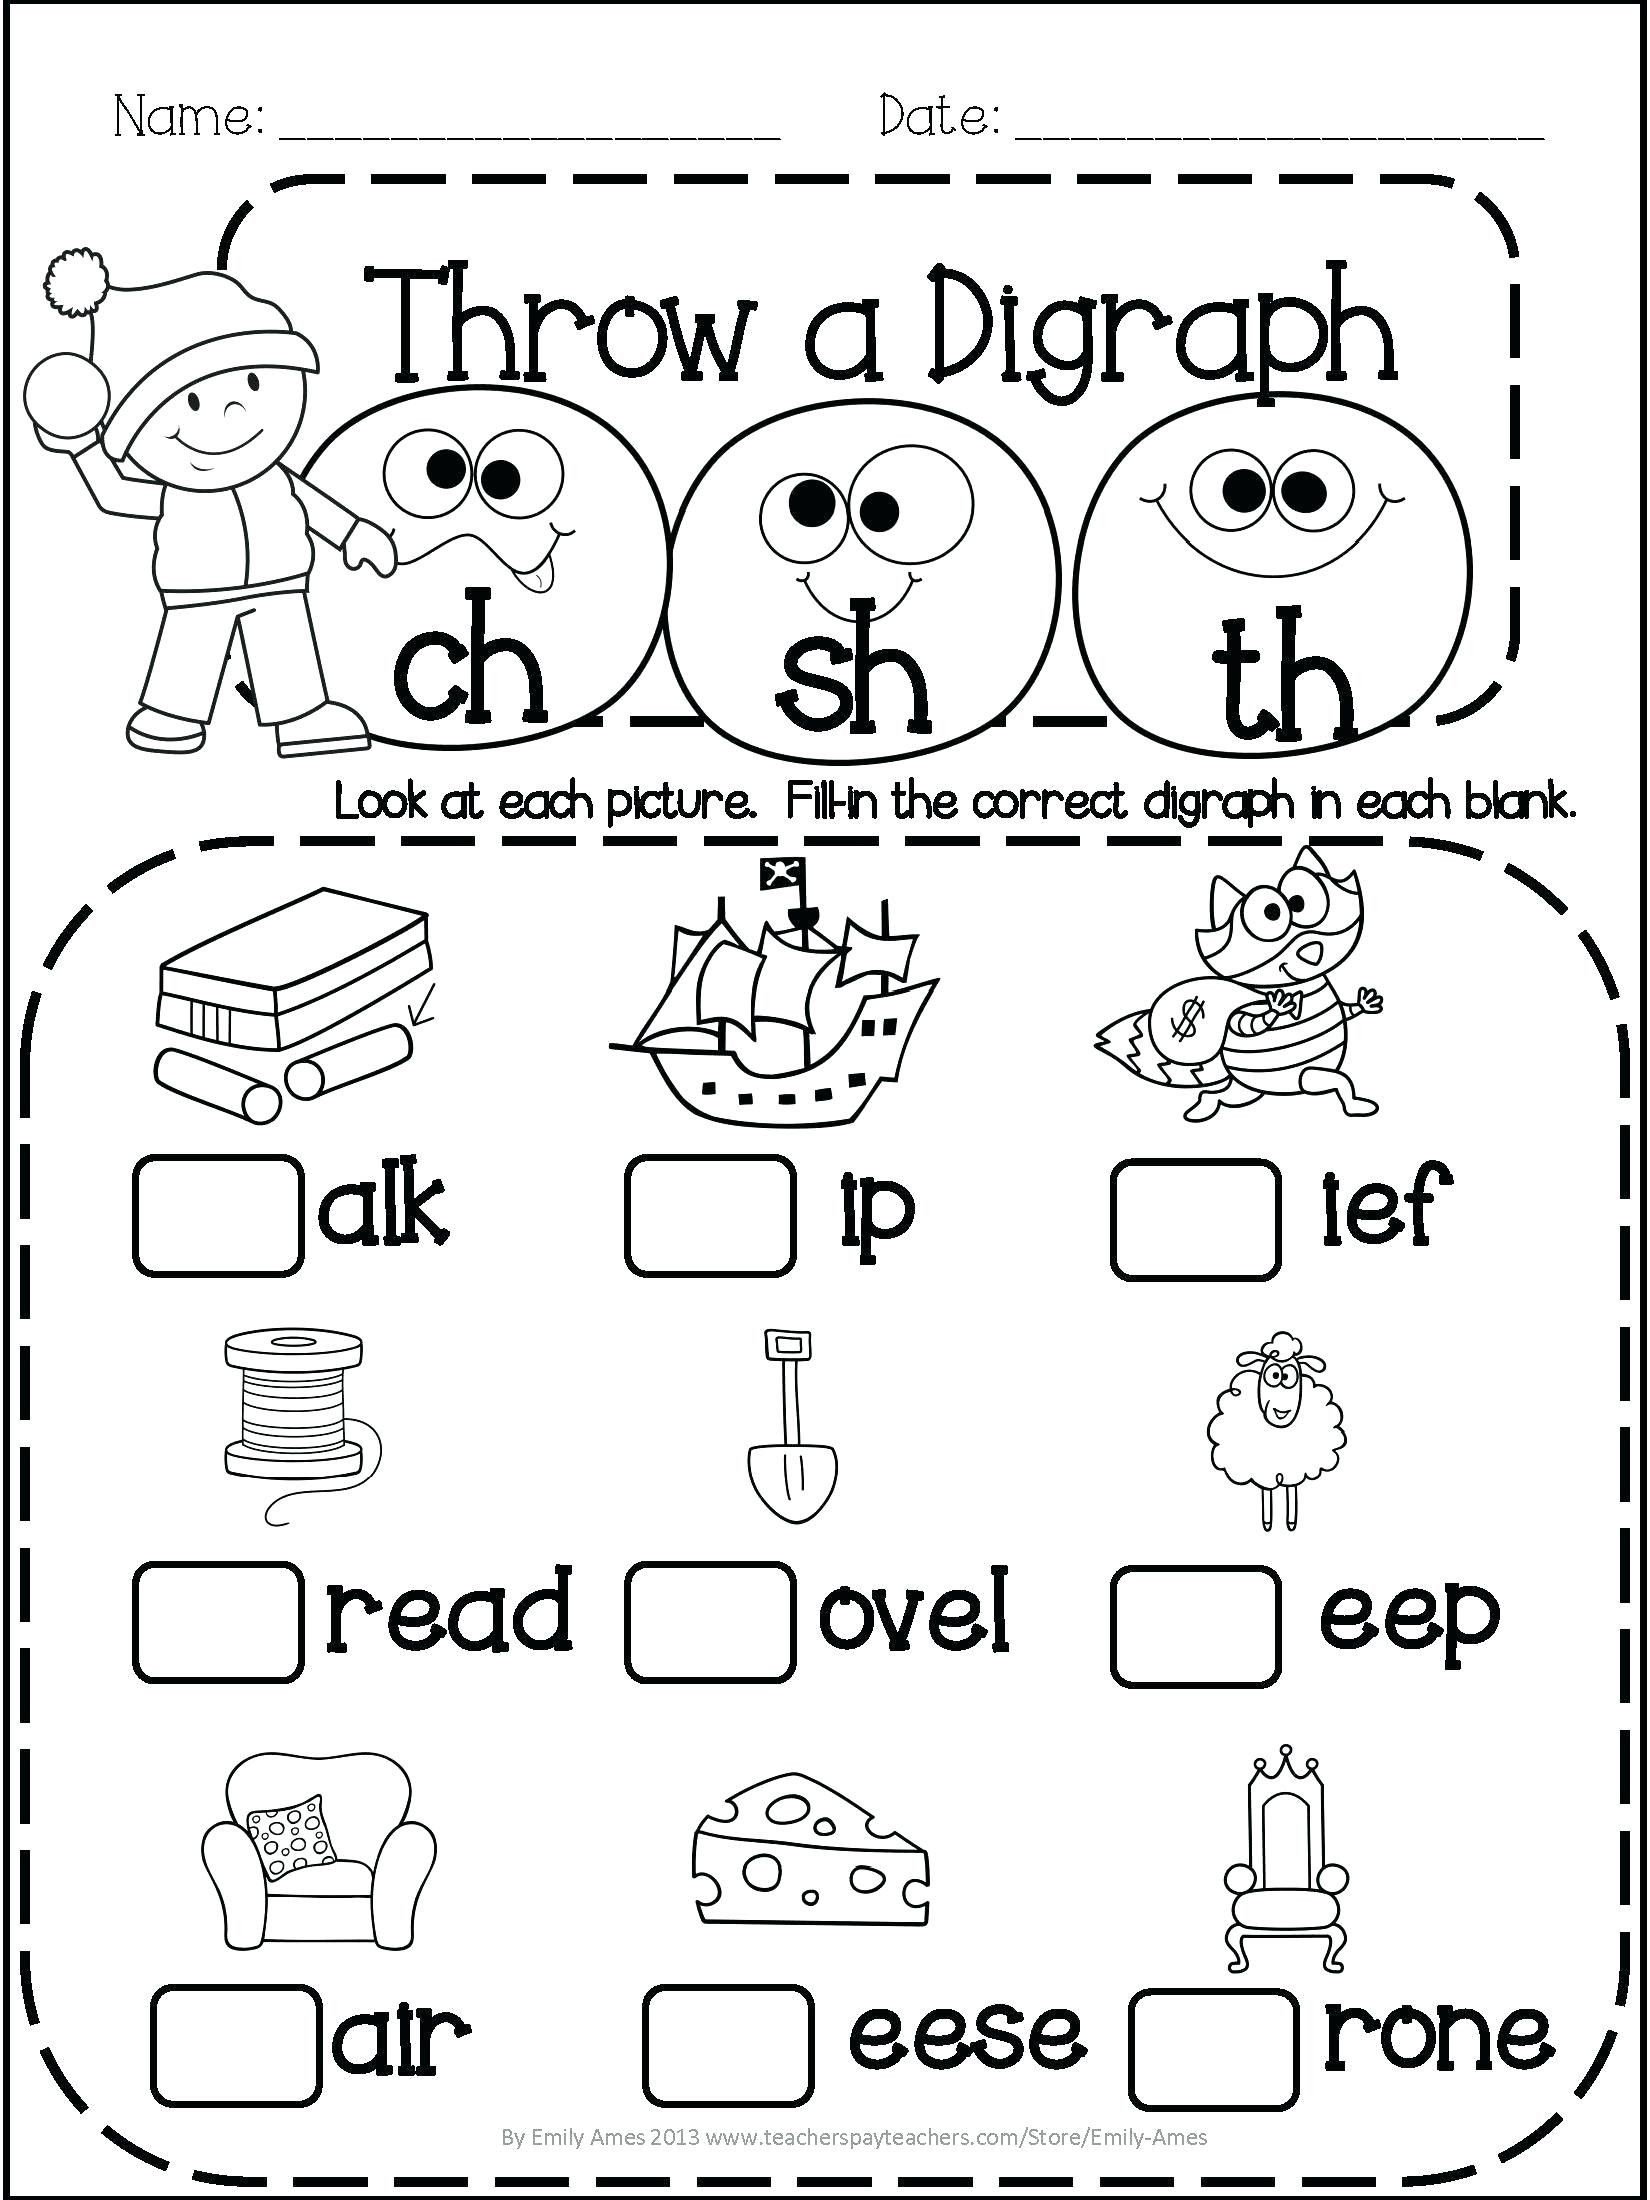 hight resolution of 4 Free Math Worksheets Third Grade 3 Addition Word Problems my first of  kindergarten print…   Kindergarten phonics worksheets